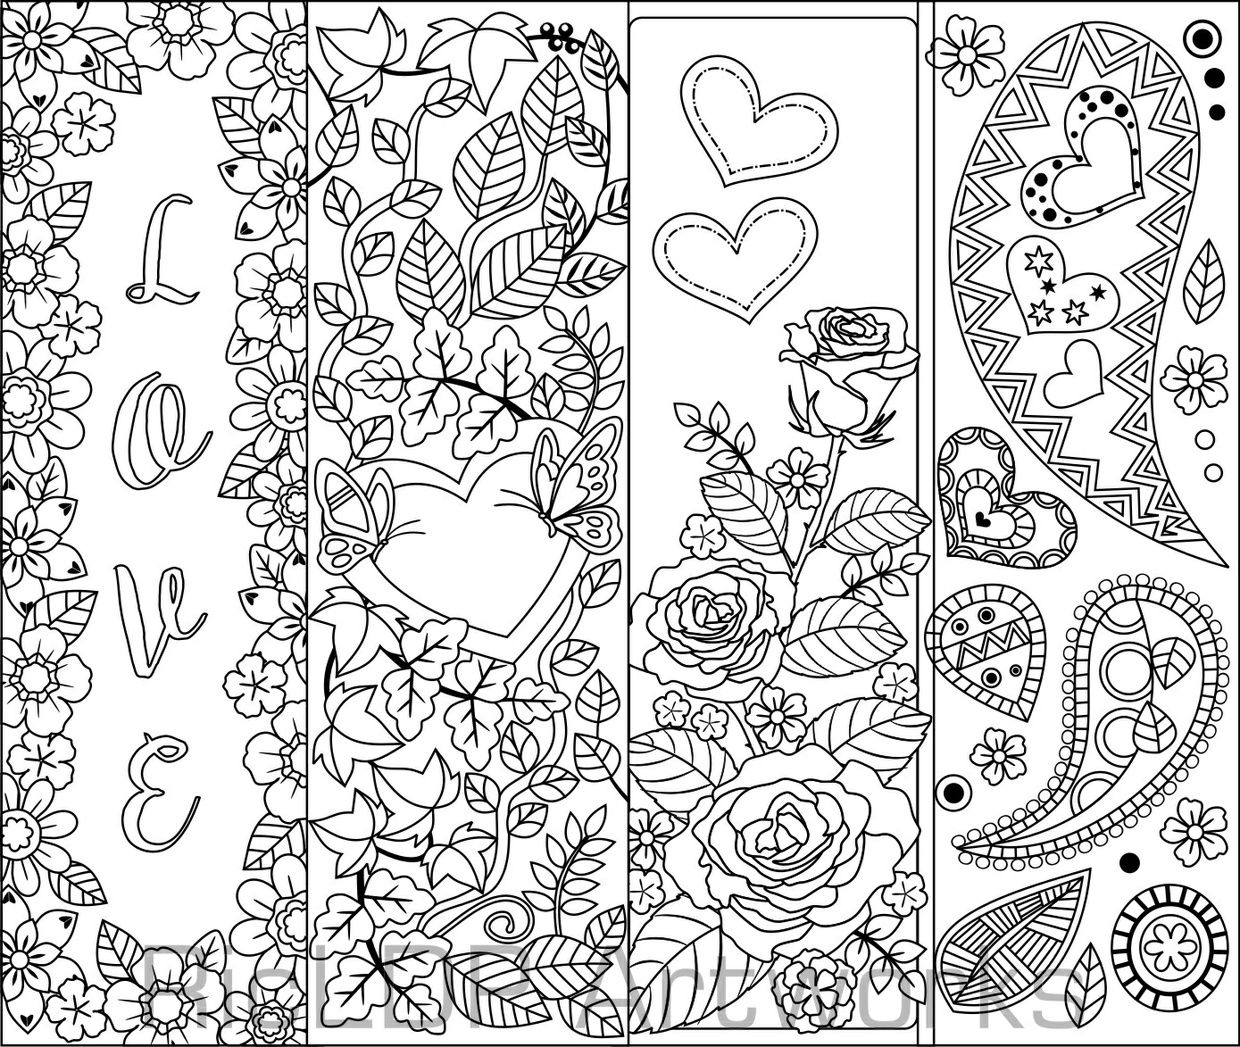 Set Of 8 Coloring Bookmarks With Hearts Art Doodles For Etsy Coloring Bookmarks Bookmarks Paisley Drawing